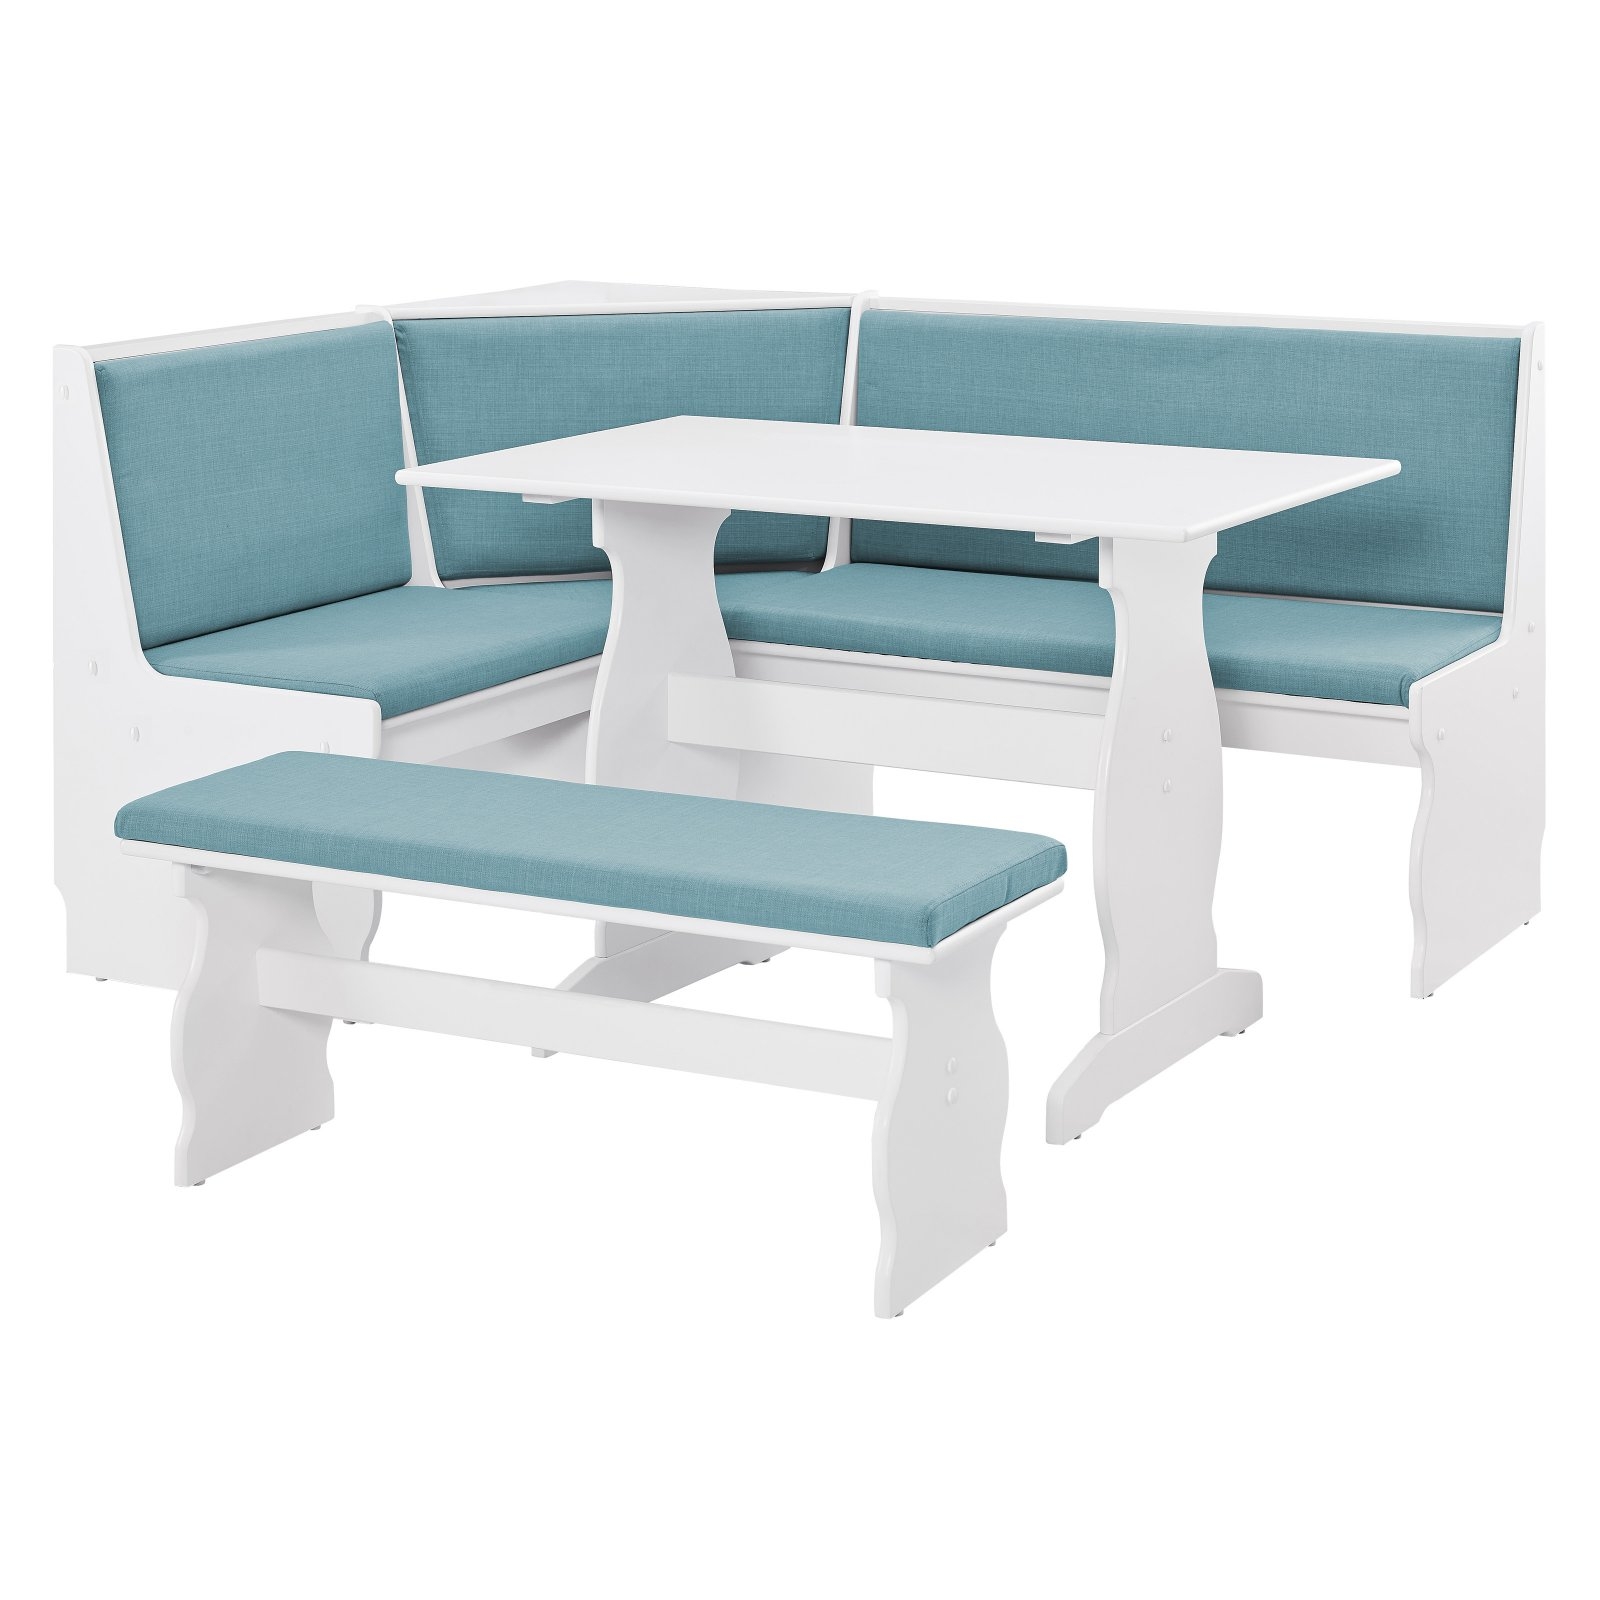 Dining Sets With Benches   Walmart.com